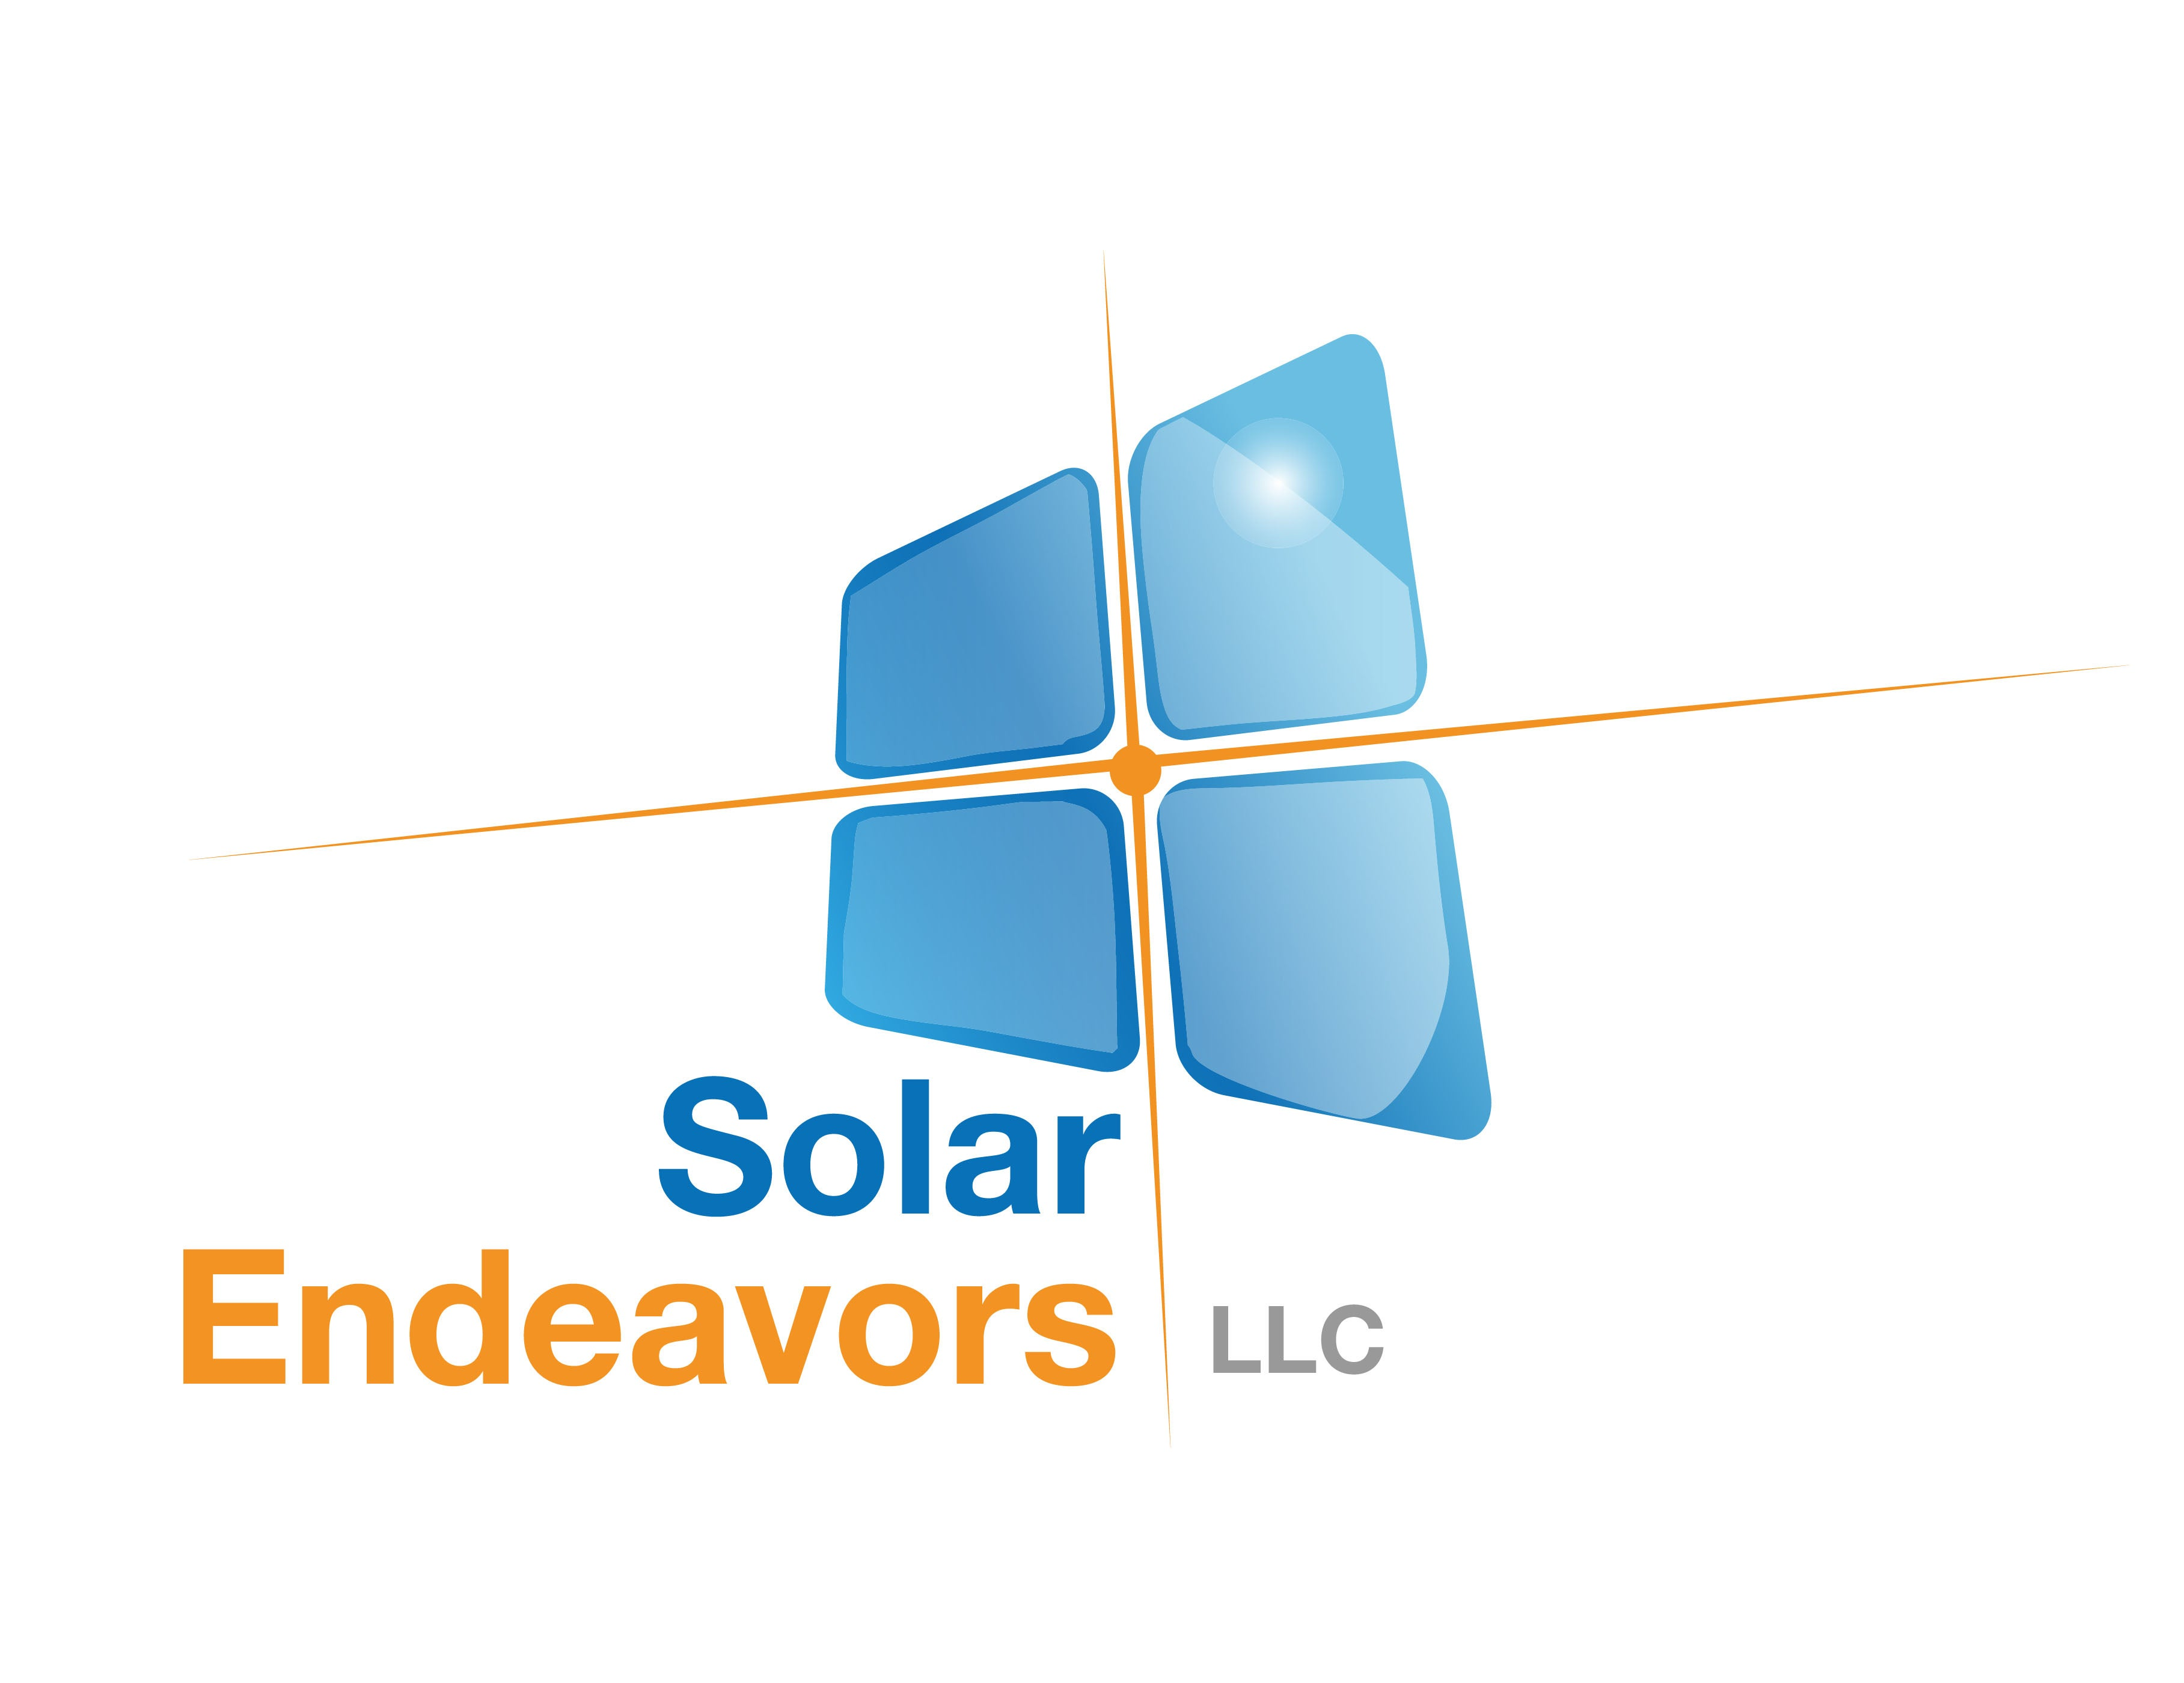 Solar Endeavors Llc Reviews